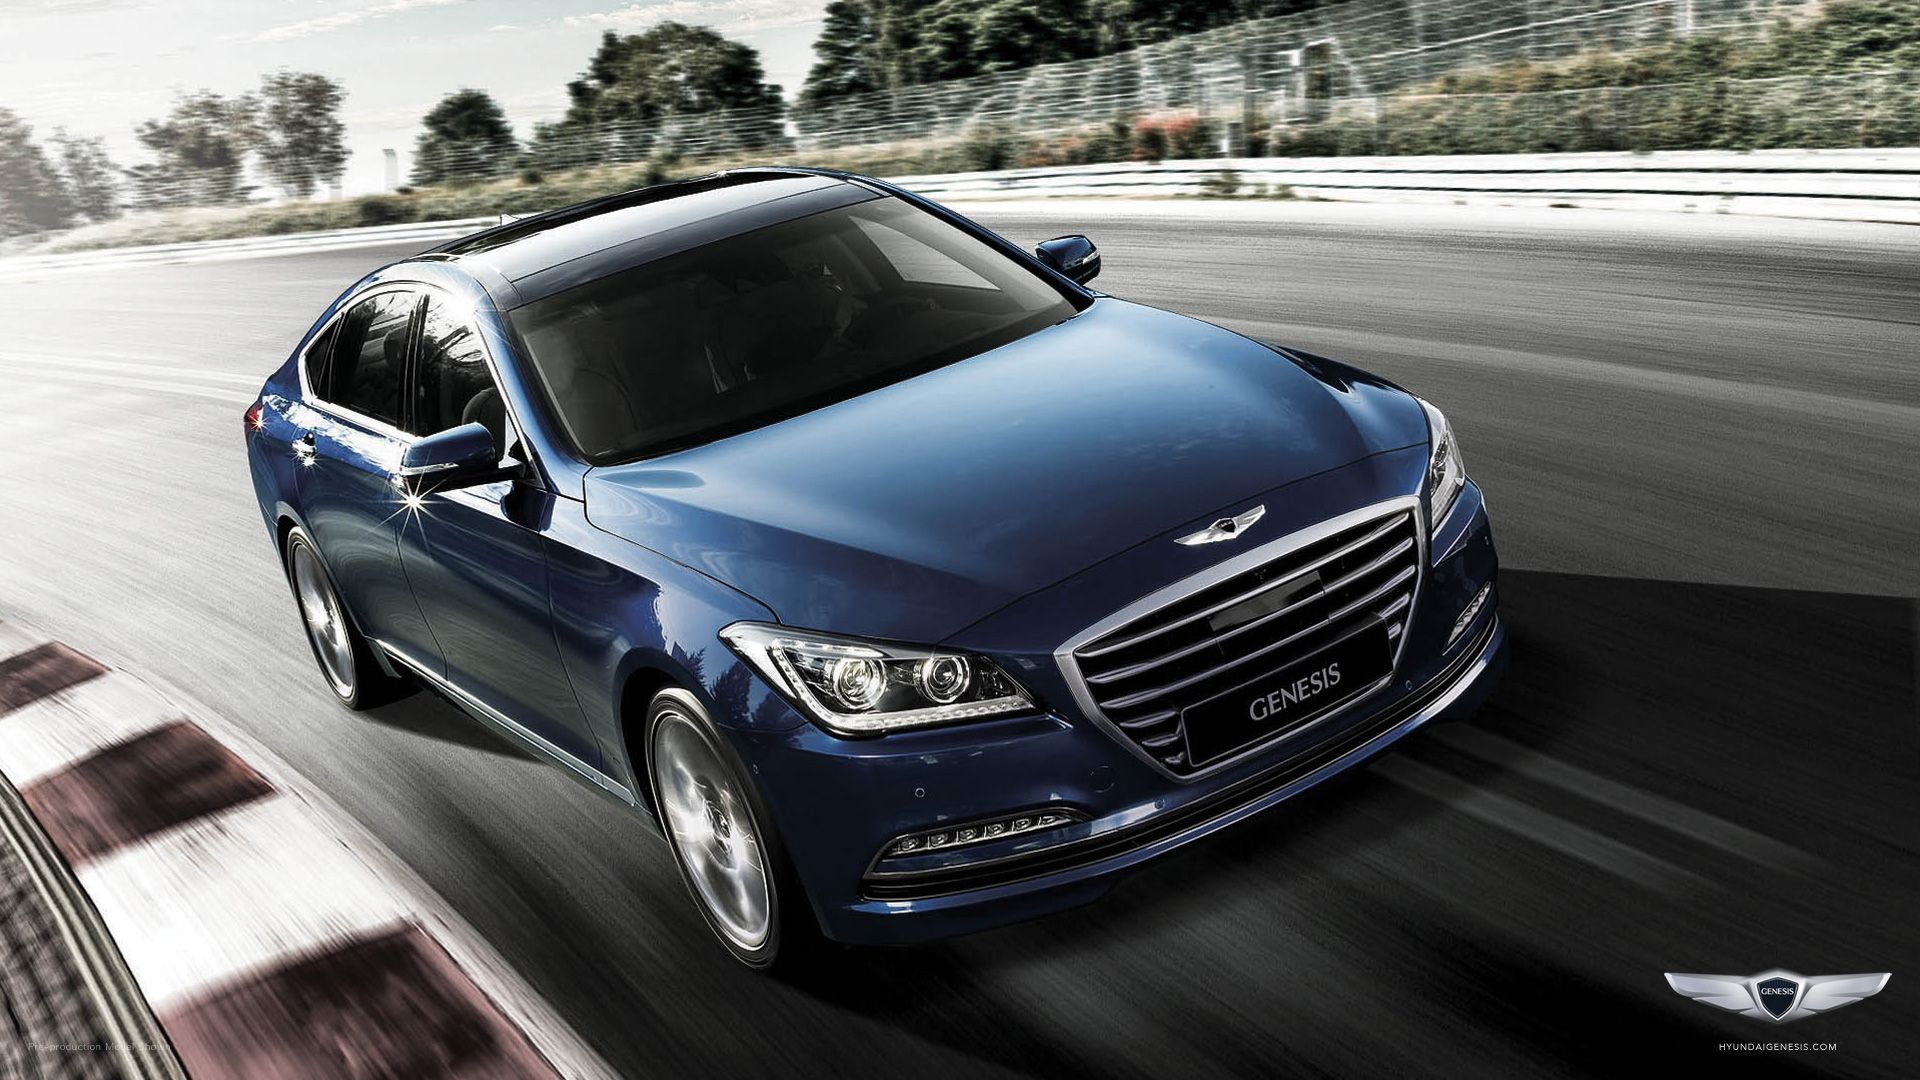 The 25 best 2015 hyundai genesis coupe ideas on pinterest 2015 hyundai genesis hyundai genesis and hyundai genesis coupe